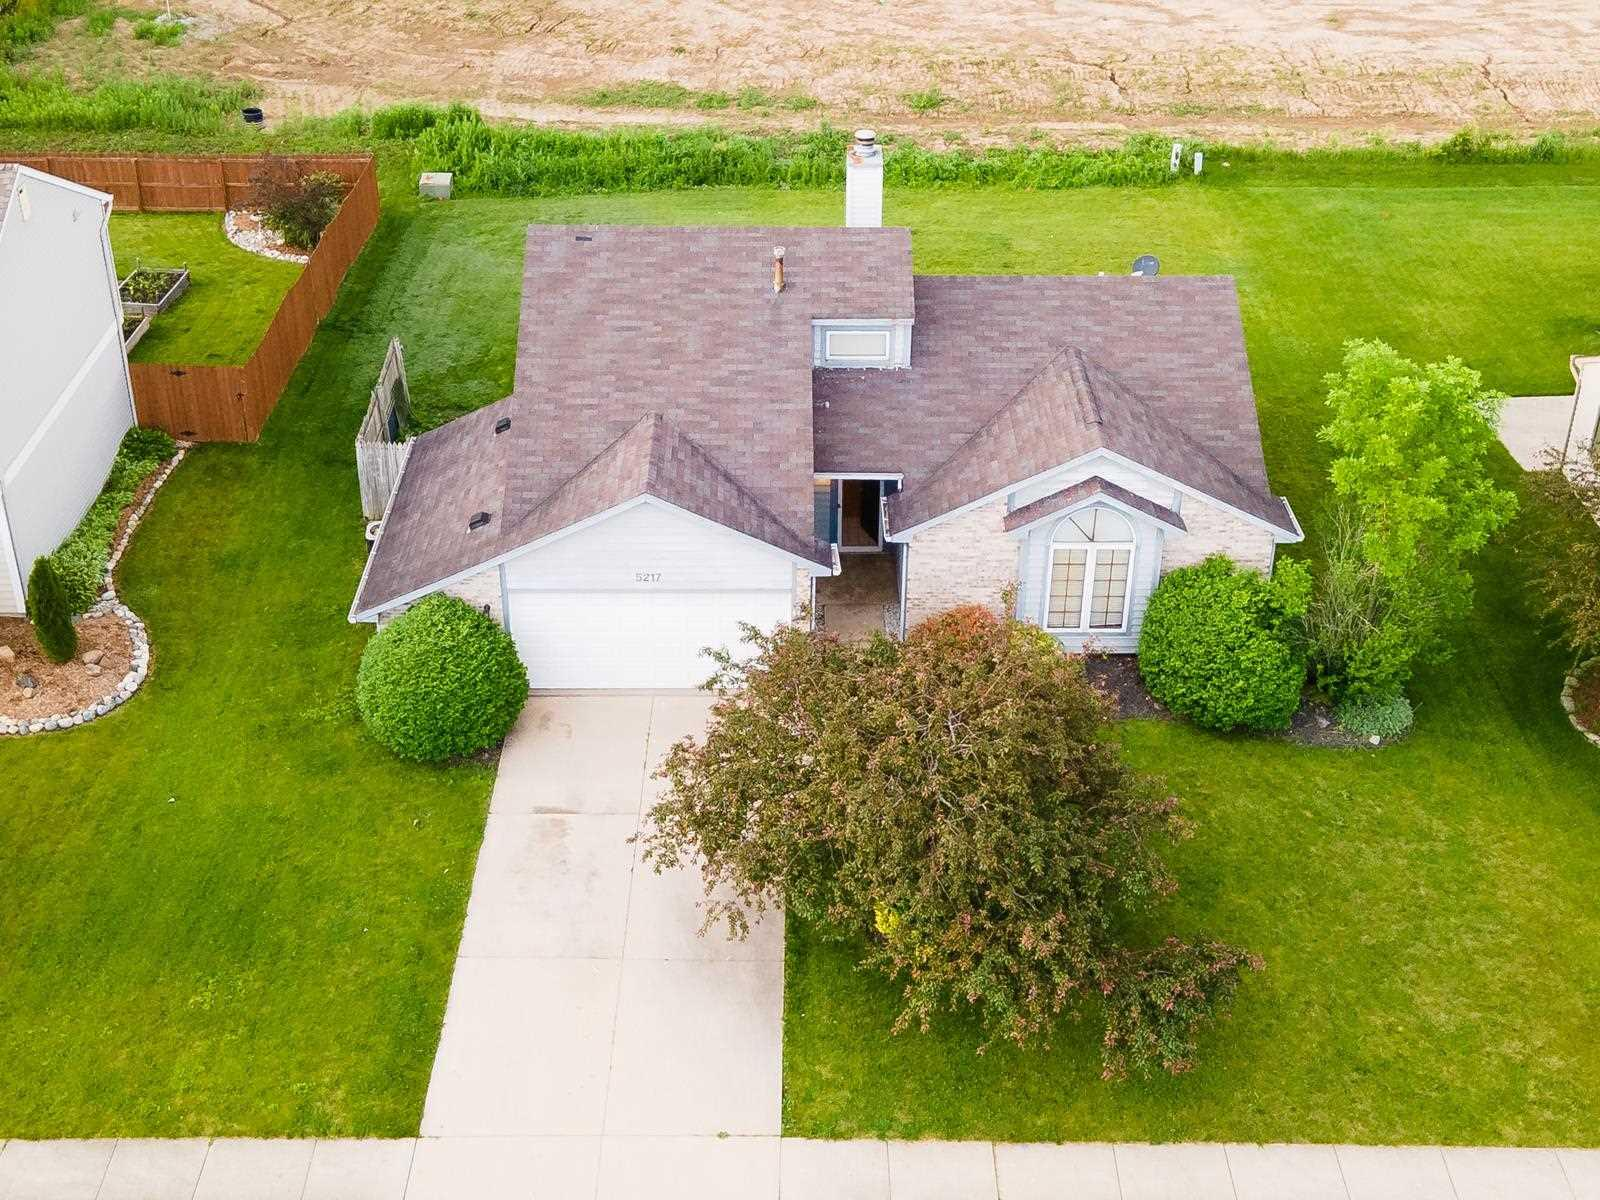 Property Image for 5217 Lonesome Oak Trail